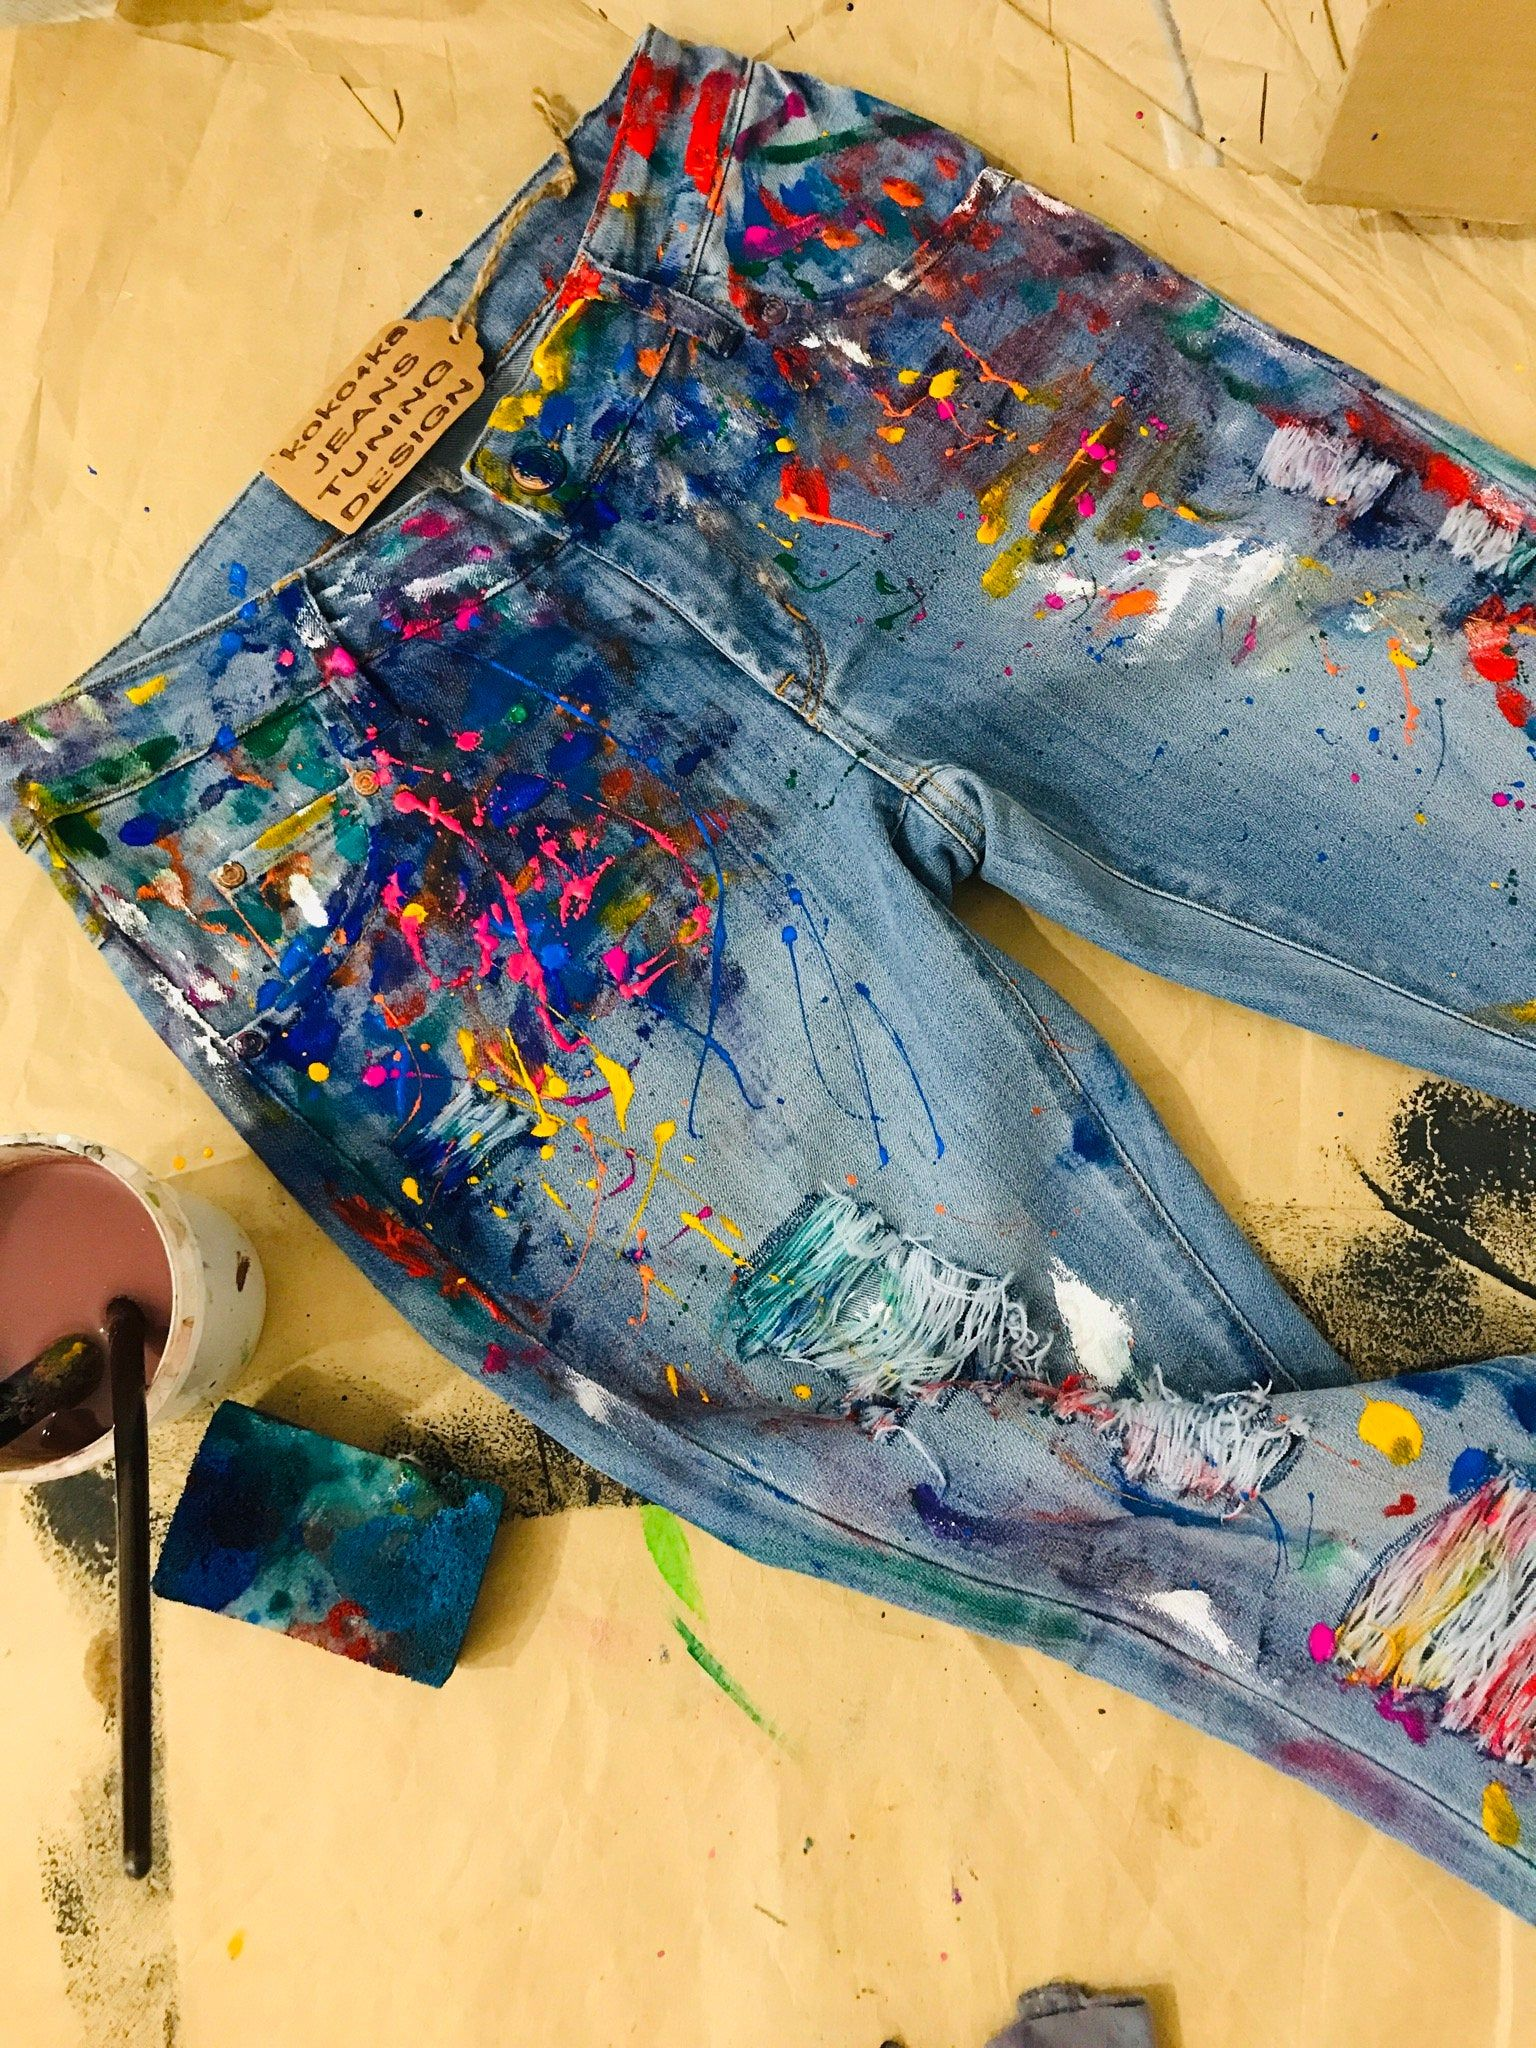 Pants blotches gift for cristmas Spray paint Paint Splatter Jeans festival clothing Hand Painted Paint splash Jeans in paint torn jeans art